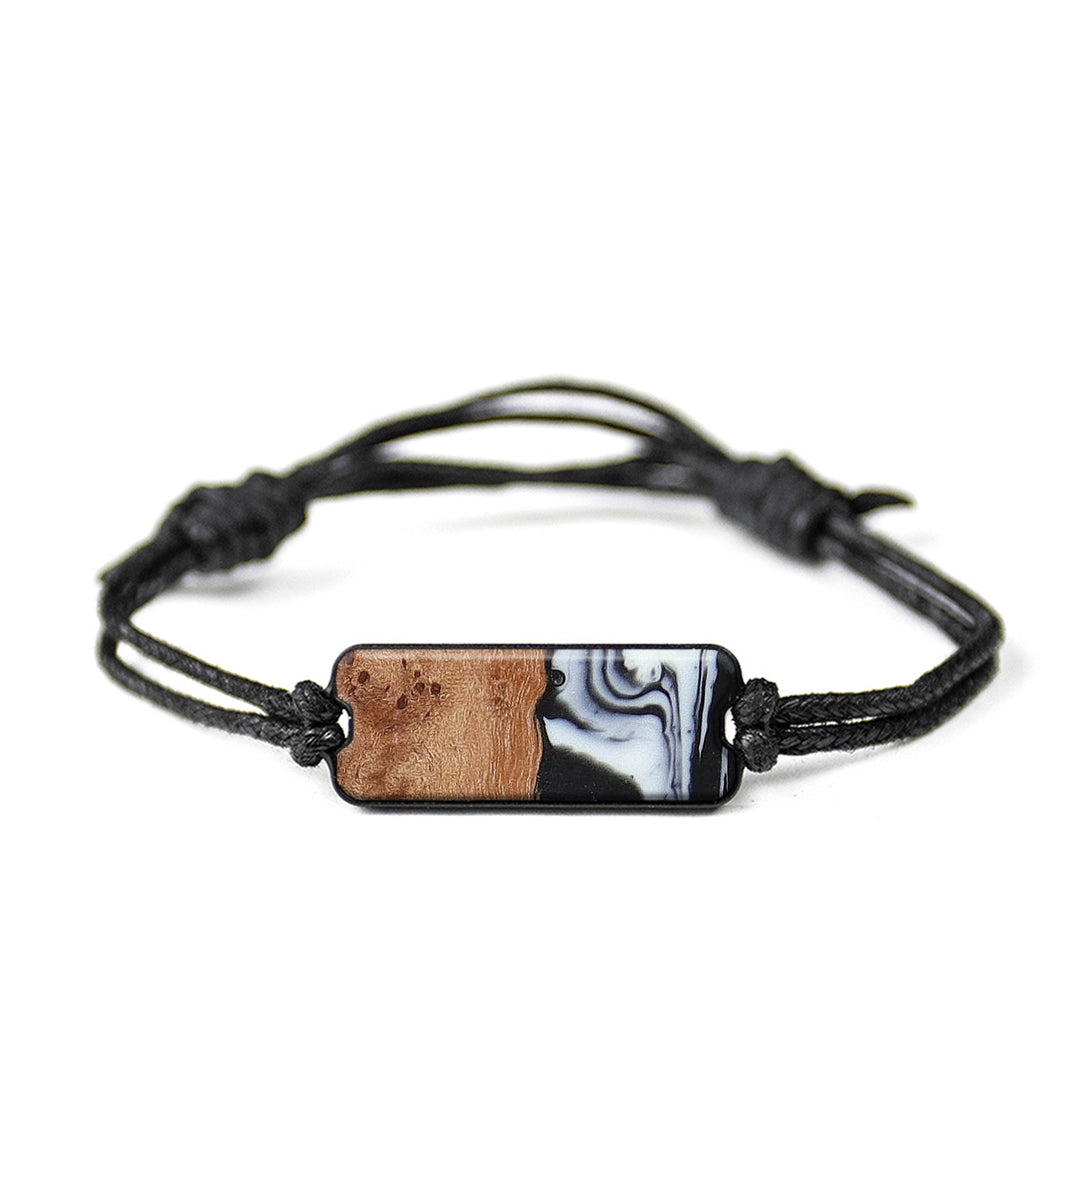 Classic Wood+Resin Bracelet - Fayina (Black & White, 394154)